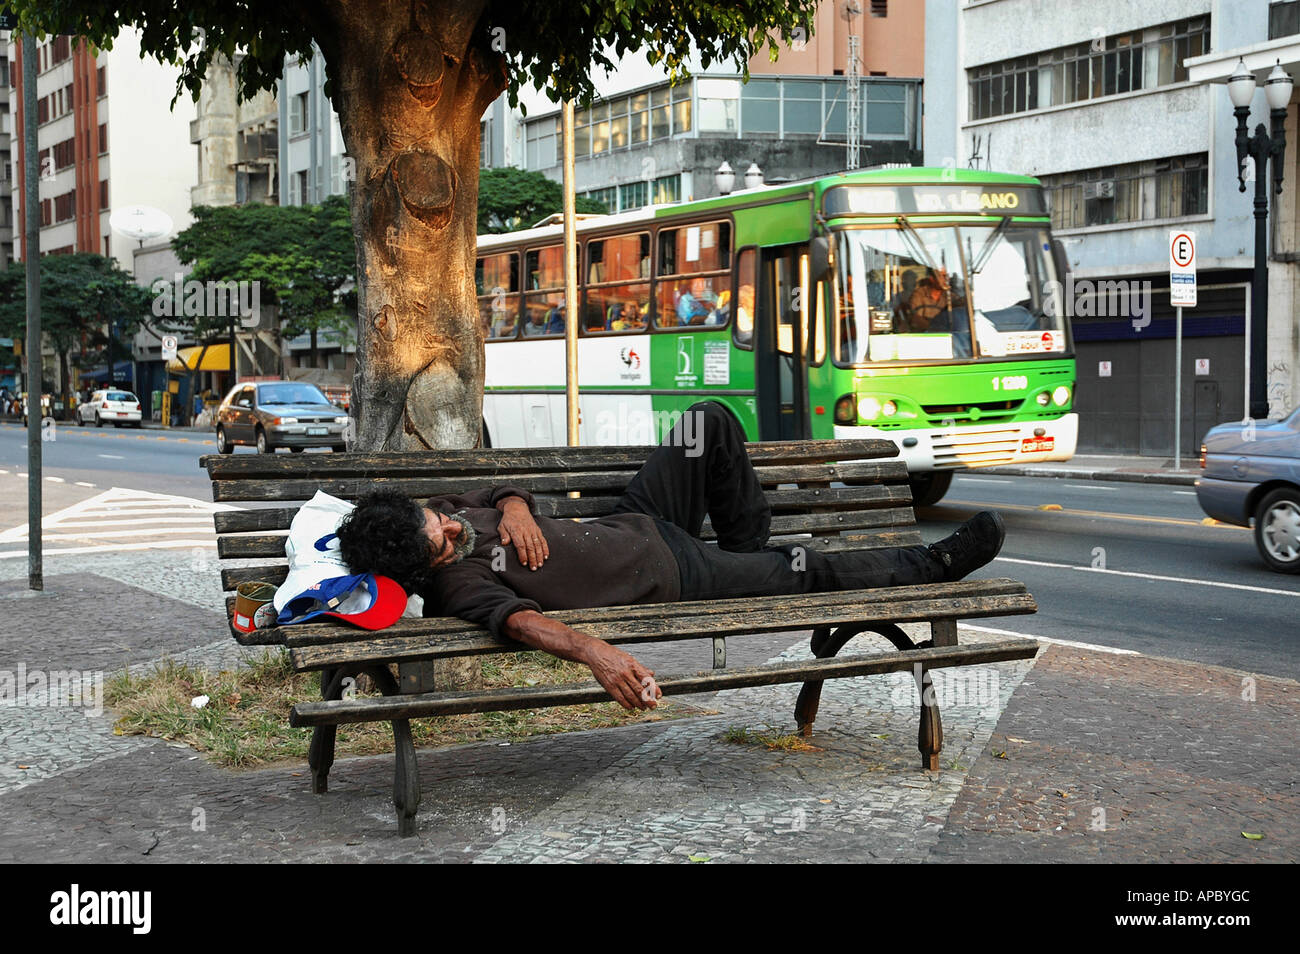 Homeless man sleeping on a bench in the center of Sao Paulo, Brazil Stock Photo